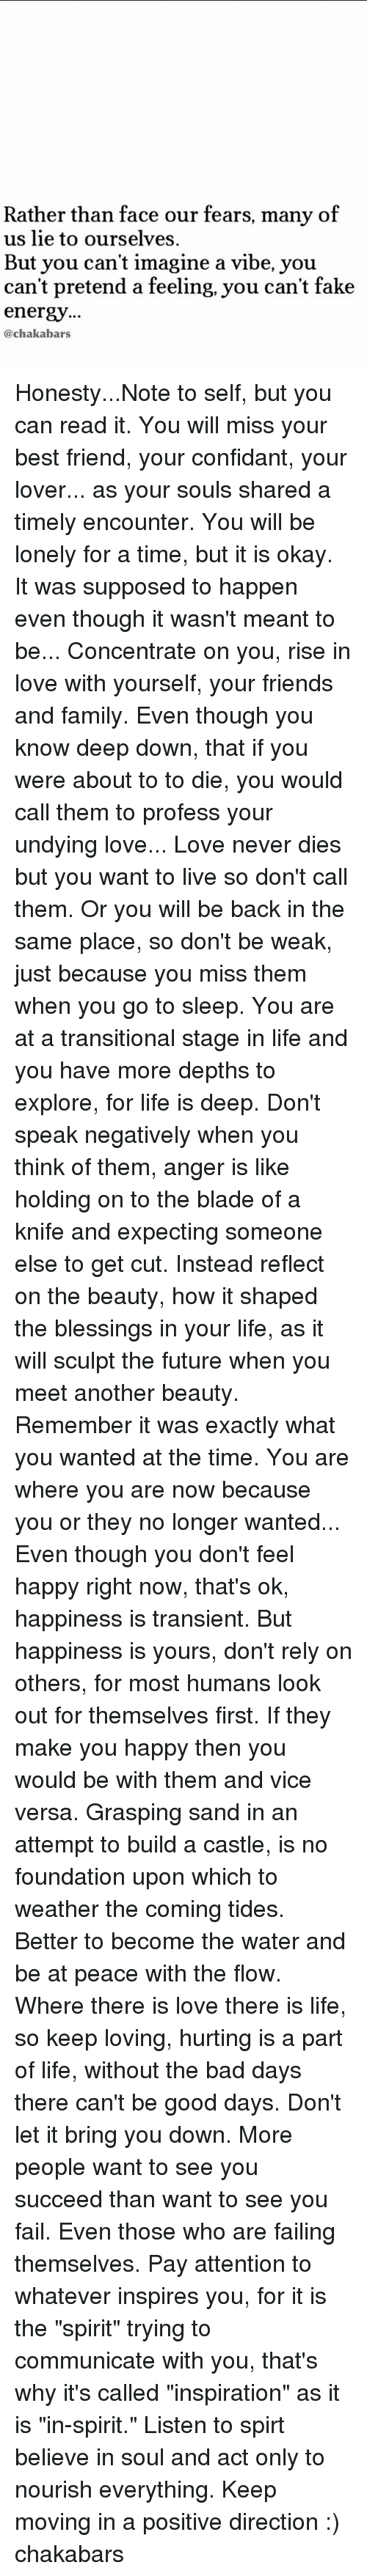 """Bad, Best Friend, and Blade: Rather than face our fears, many of  us lie to ourselves.  But you can't imagine a vibe, you  can't pretend a feeling, you can't fake  energy...  @chakabars Honesty...Note to self, but you can read it. You will miss your best friend, your confidant, your lover... as your souls shared a timely encounter. You will be lonely for a time, but it is okay. It was supposed to happen even though it wasn't meant to be... Concentrate on you, rise in love with yourself, your friends and family. Even though you know deep down, that if you were about to to die, you would call them to profess your undying love... Love never dies but you want to live so don't call them. Or you will be back in the same place, so don't be weak, just because you miss them when you go to sleep. You are at a transitional stage in life and you have more depths to explore, for life is deep. Don't speak negatively when you think of them, anger is like holding on to the blade of a knife and expecting someone else to get cut. Instead reflect on the beauty, how it shaped the blessings in your life, as it will sculpt the future when you meet another beauty. Remember it was exactly what you wanted at the time. You are where you are now because you or they no longer wanted... Even though you don't feel happy right now, that's ok, happiness is transient. But happiness is yours, don't rely on others, for most humans look out for themselves first. If they make you happy then you would be with them and vice versa. Grasping sand in an attempt to build a castle, is no foundation upon which to weather the coming tides. Better to become the water and be at peace with the flow. Where there is love there is life, so keep loving, hurting is a part of life, without the bad days there can't be good days. Don't let it bring you down. More people want to see you succeed than want to see you fail. Even those who are failing themselves. Pay attention to whatever inspires you, for it is the """"spirit"""" t"""